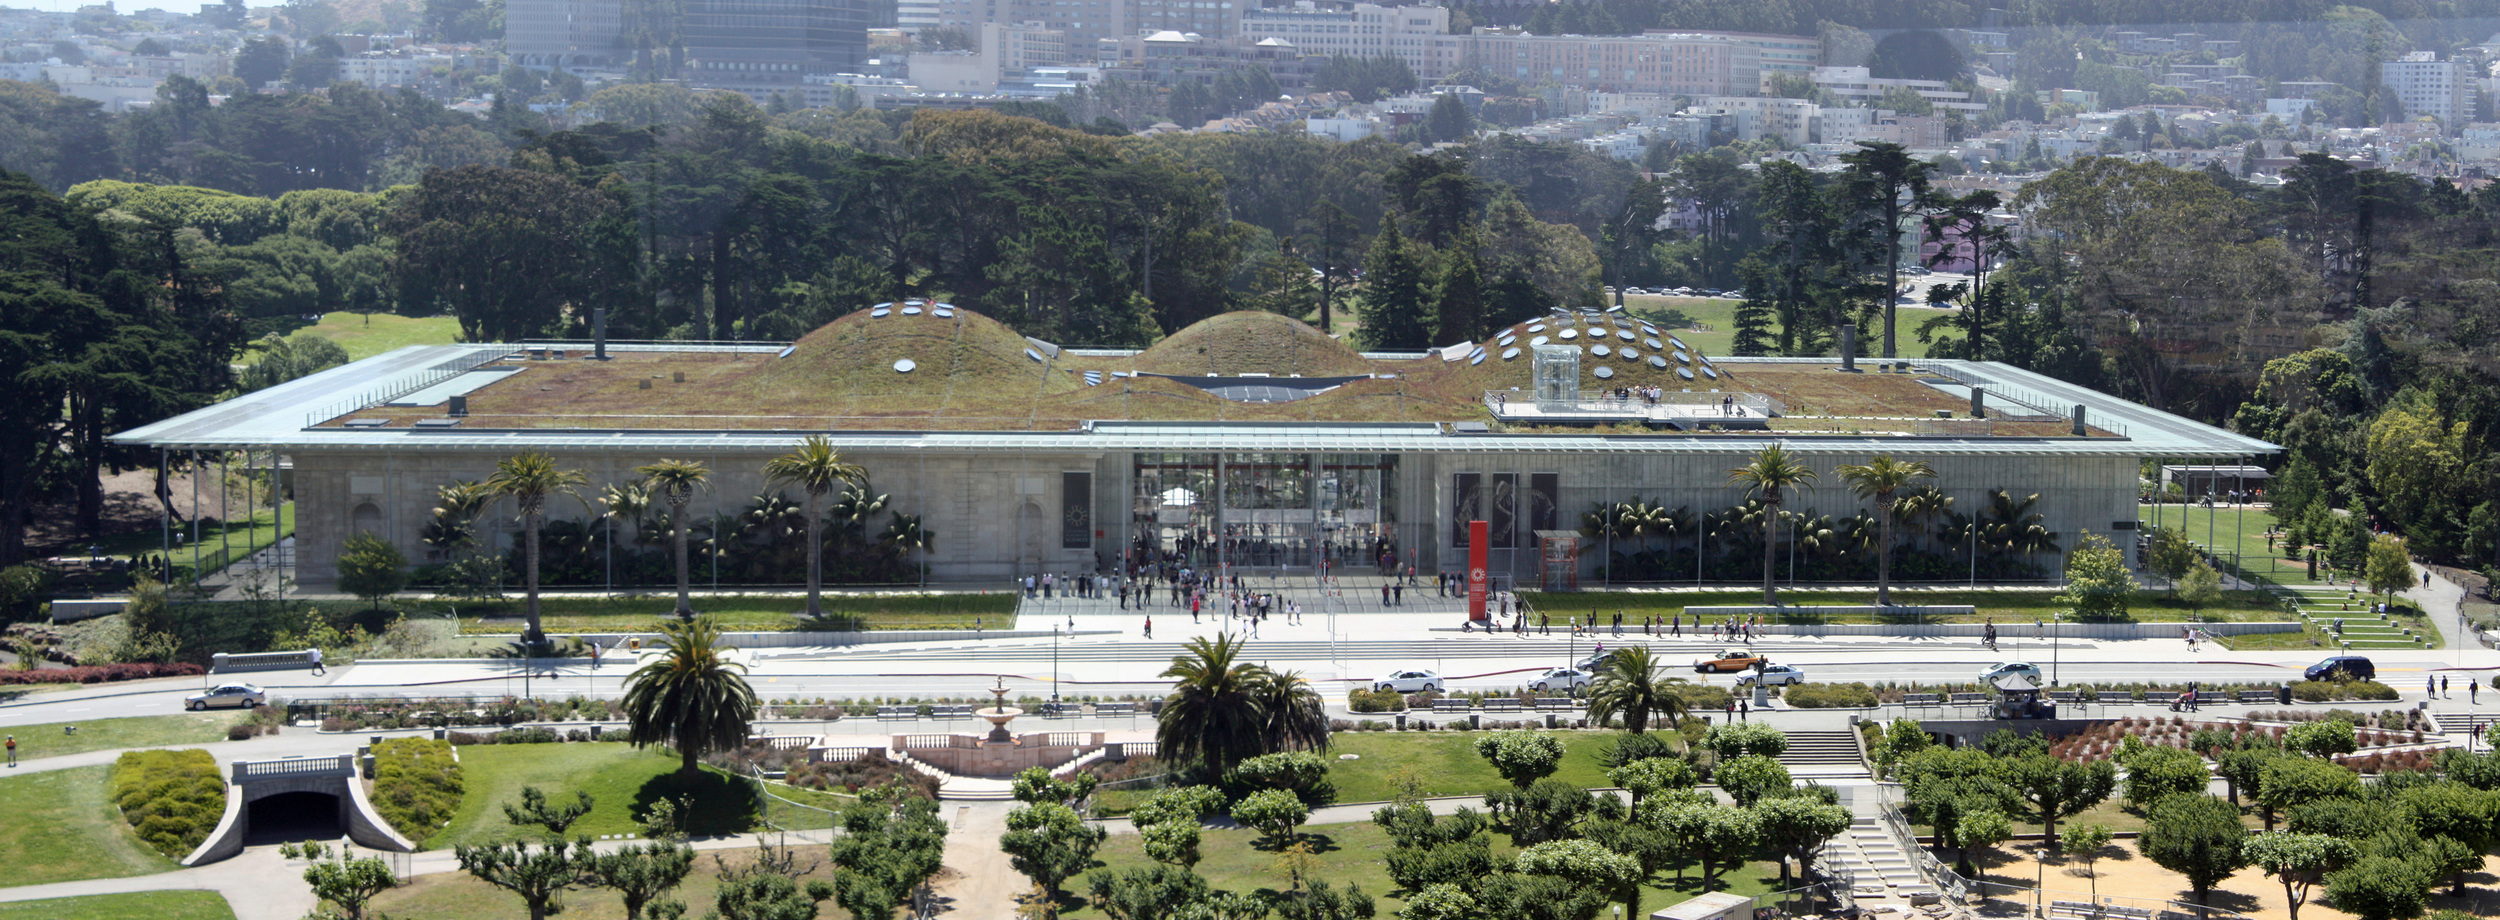 People are drawn to the many museums within Golden Gate Park, including the De Young Art museum and the California Academy of Sciences, above, known for its four-story rainforest exhibit.